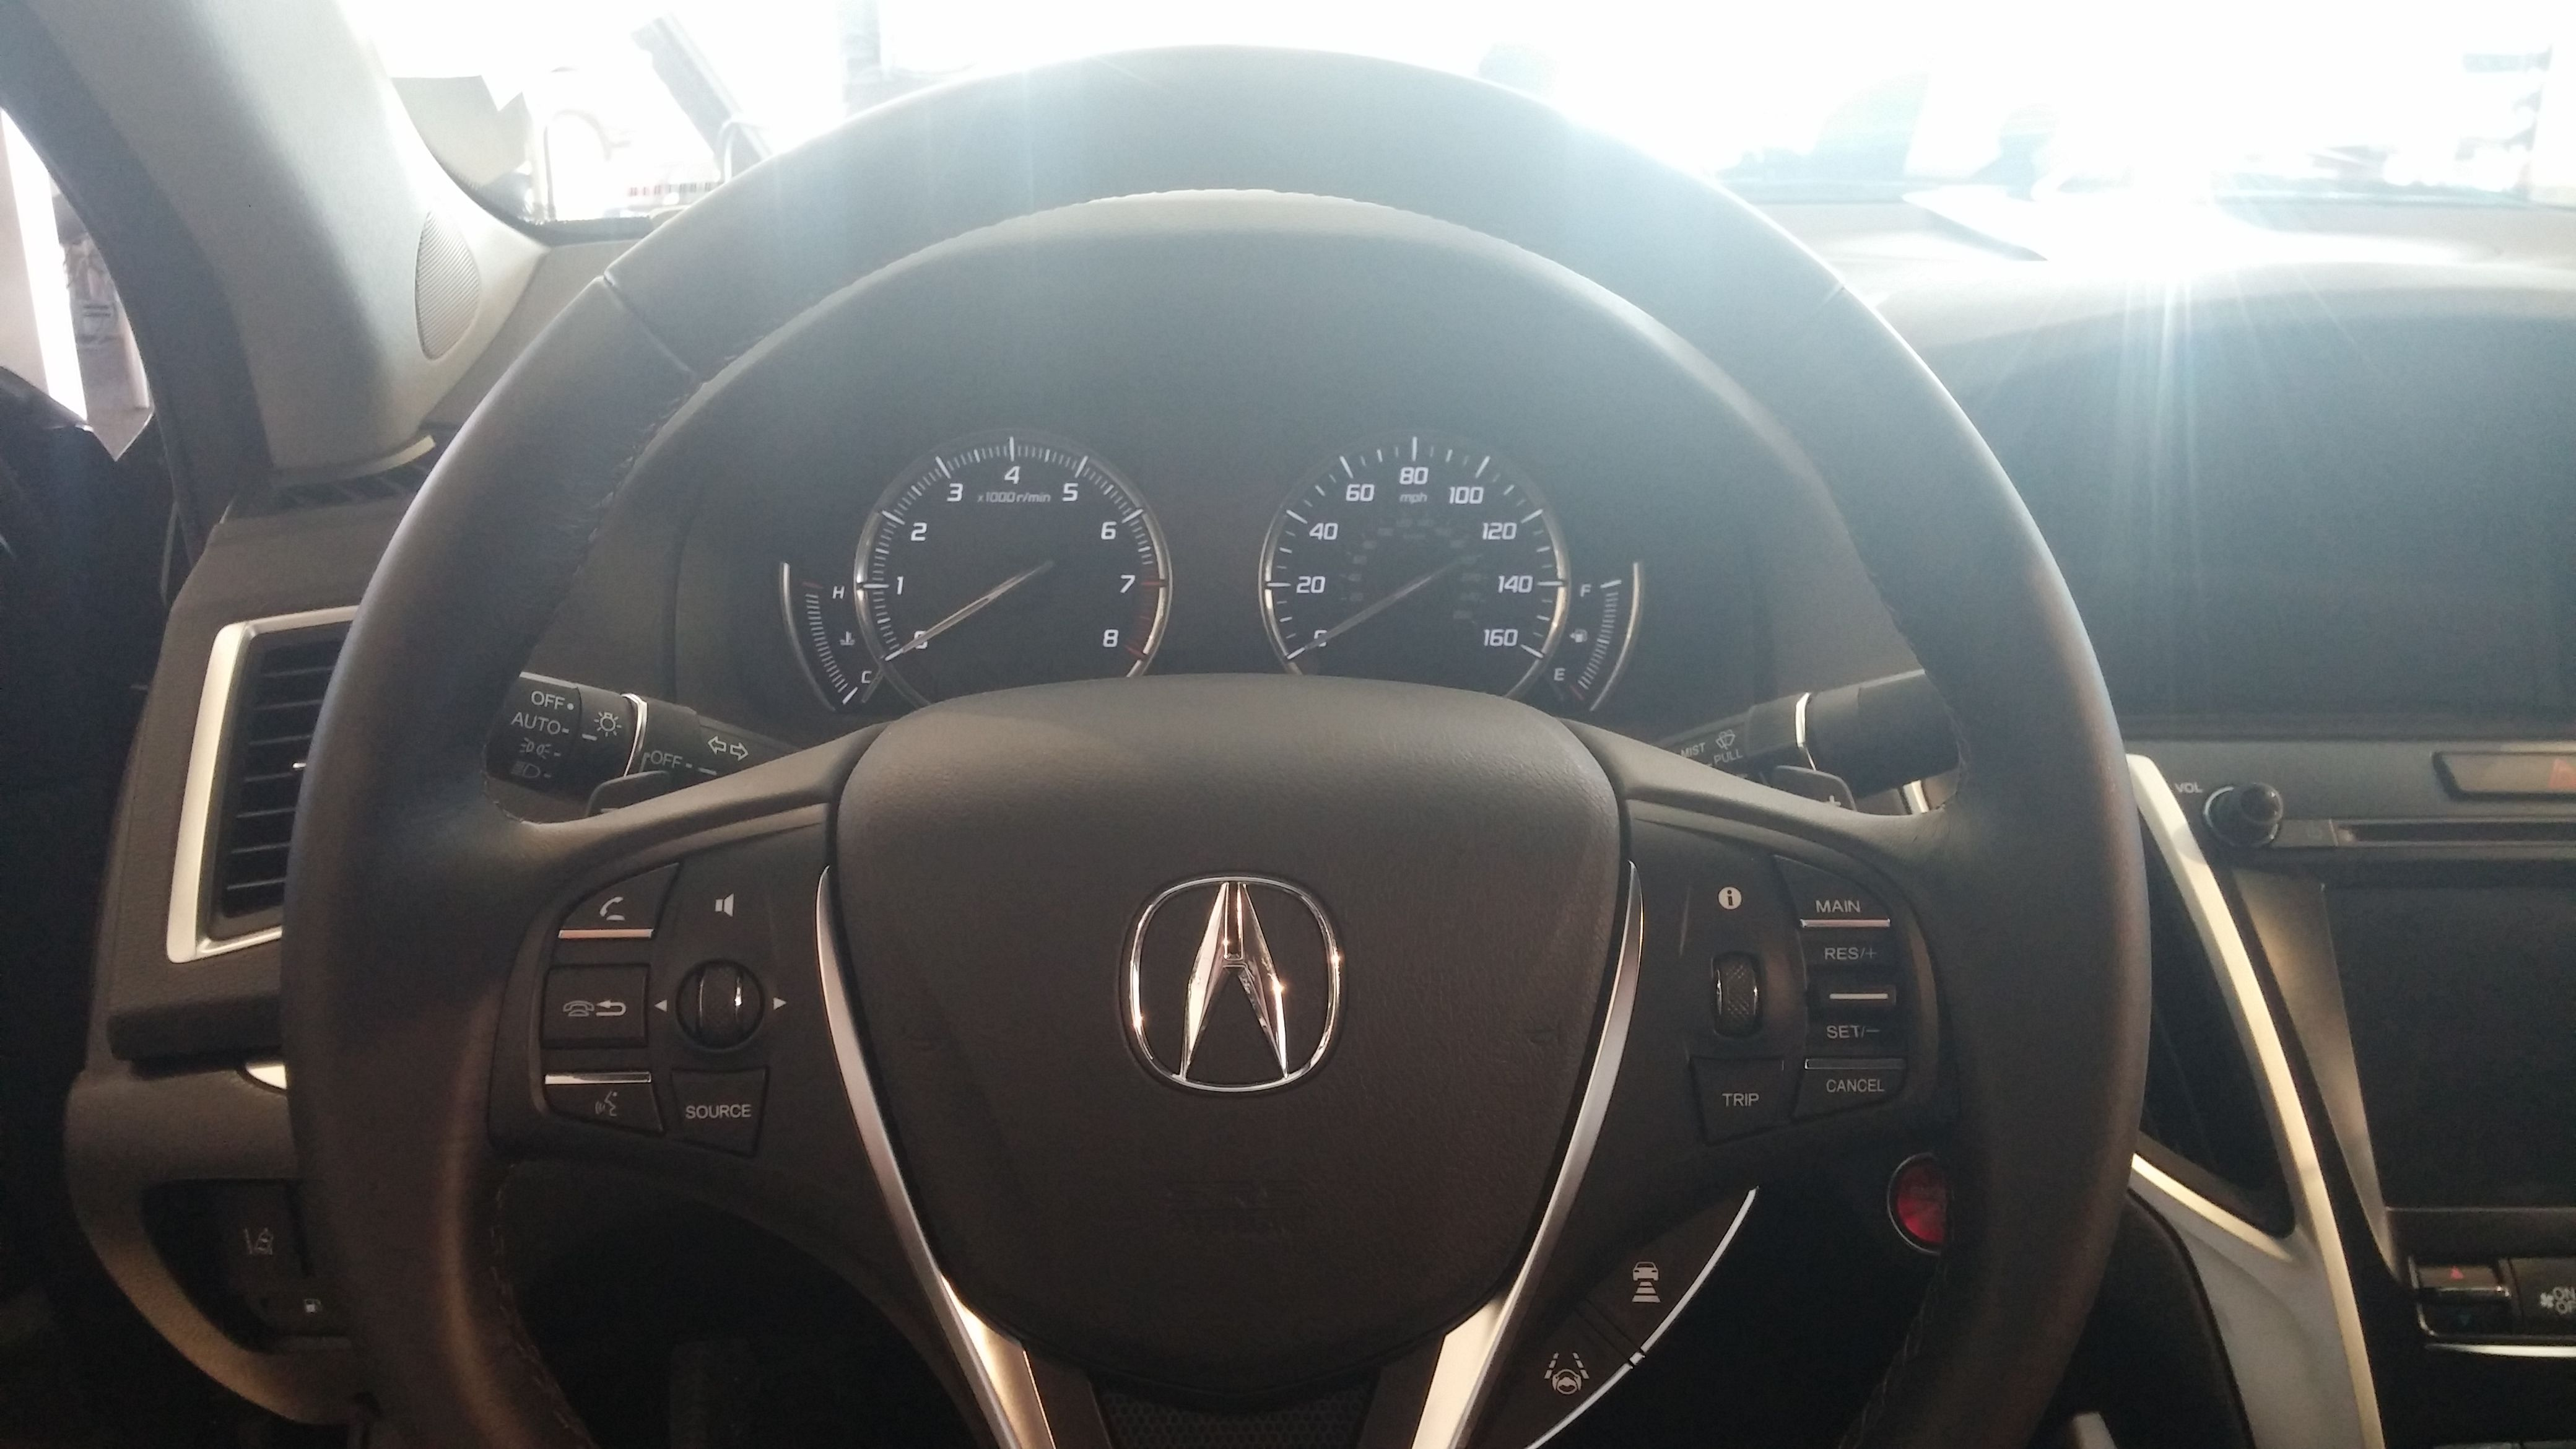 Can you imagine yourself behind the wheel of a TLX?